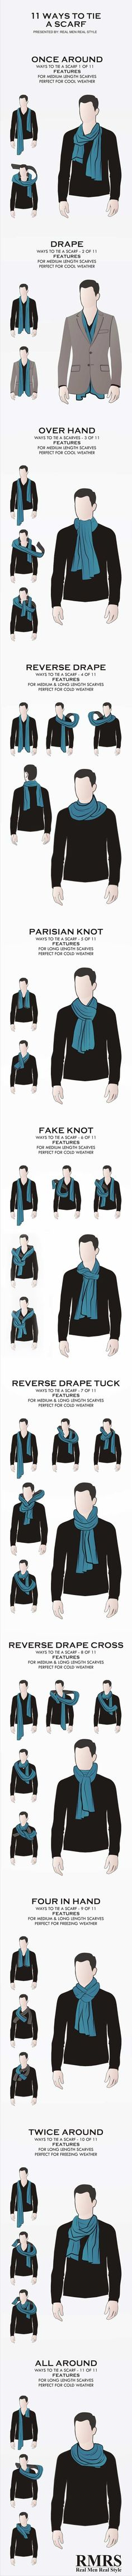 11 Ways to tie a scarf – the style you choose depends on the length of scarf you have, the look you want, and how cold is the temperature.